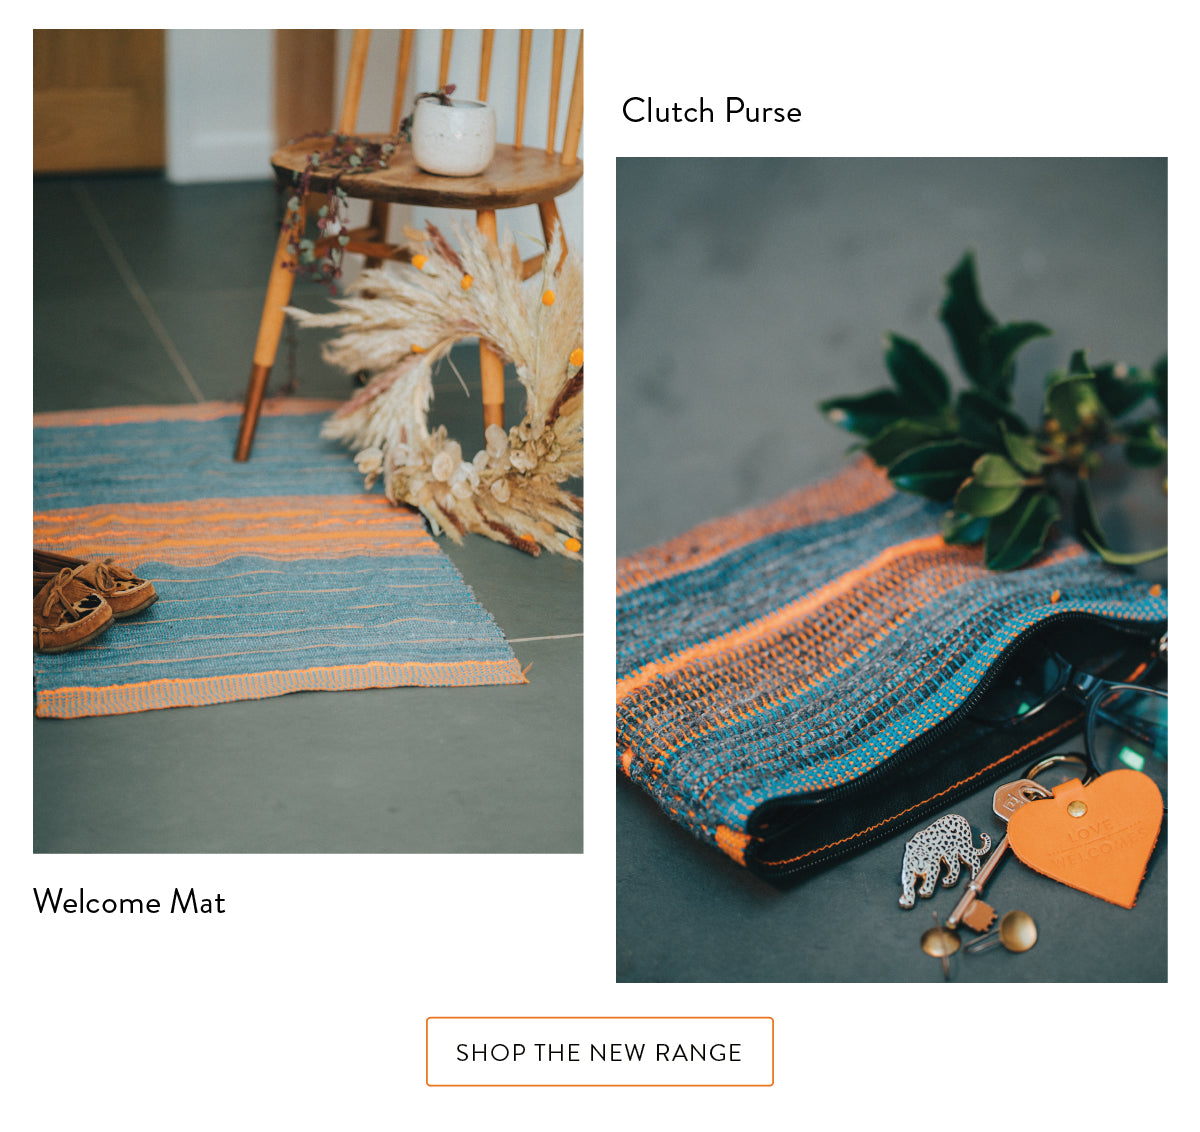 Love Welcomes - Welcome Mat & Clutch Purse